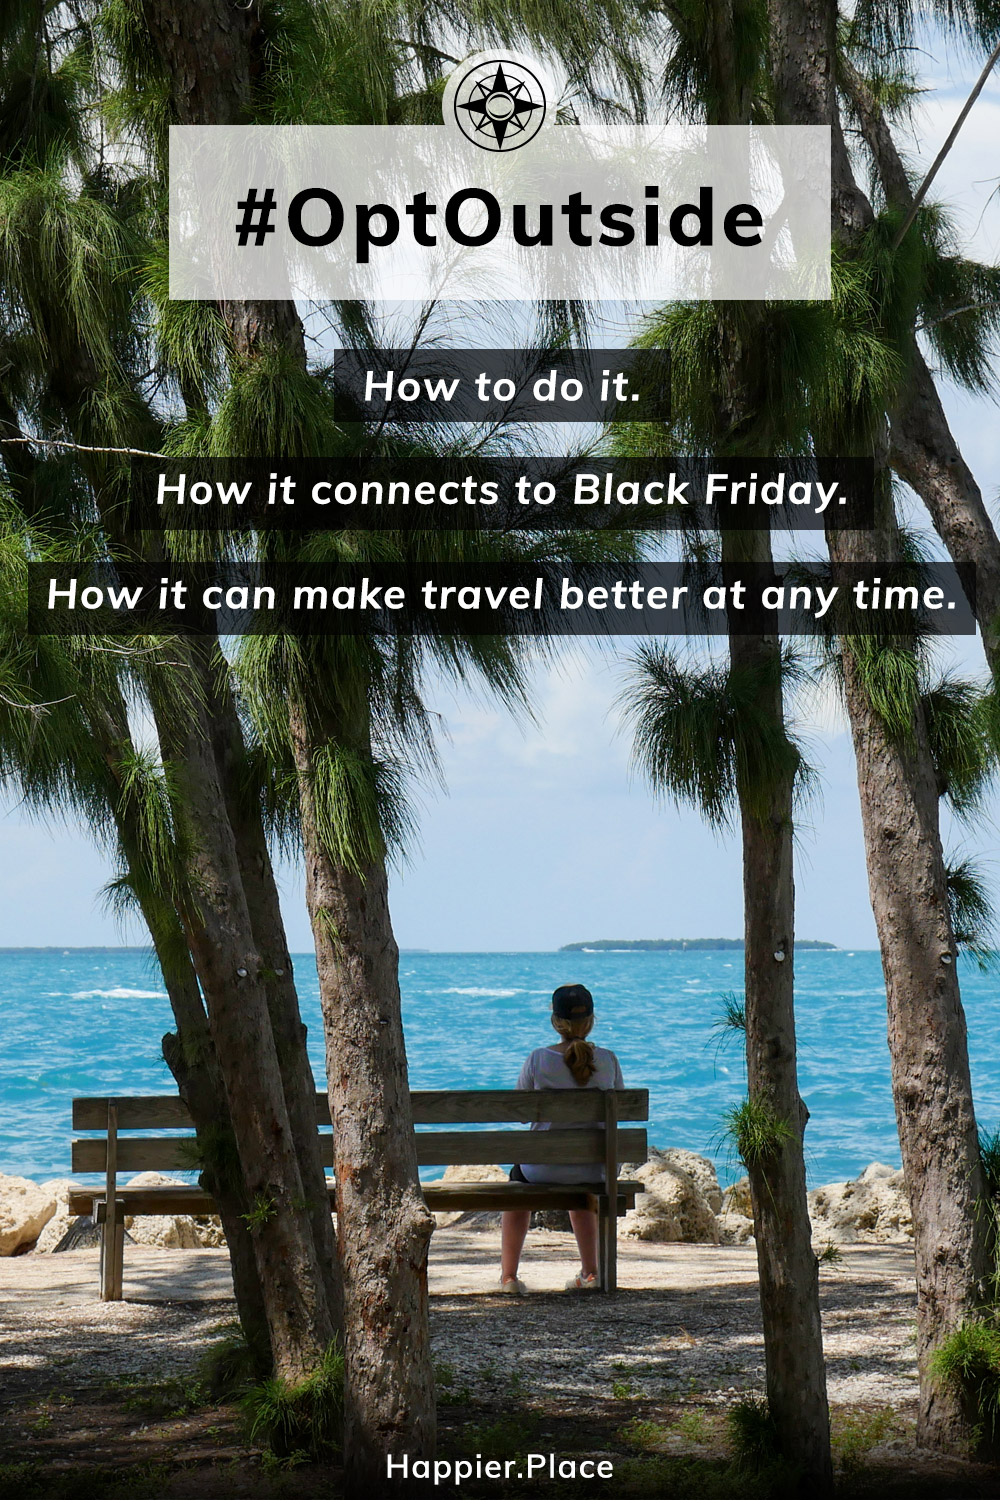 Woman relax on Key West. What is #OptOutside. How to do it. How it connects to Black Friday. How it can make travel better at any time.